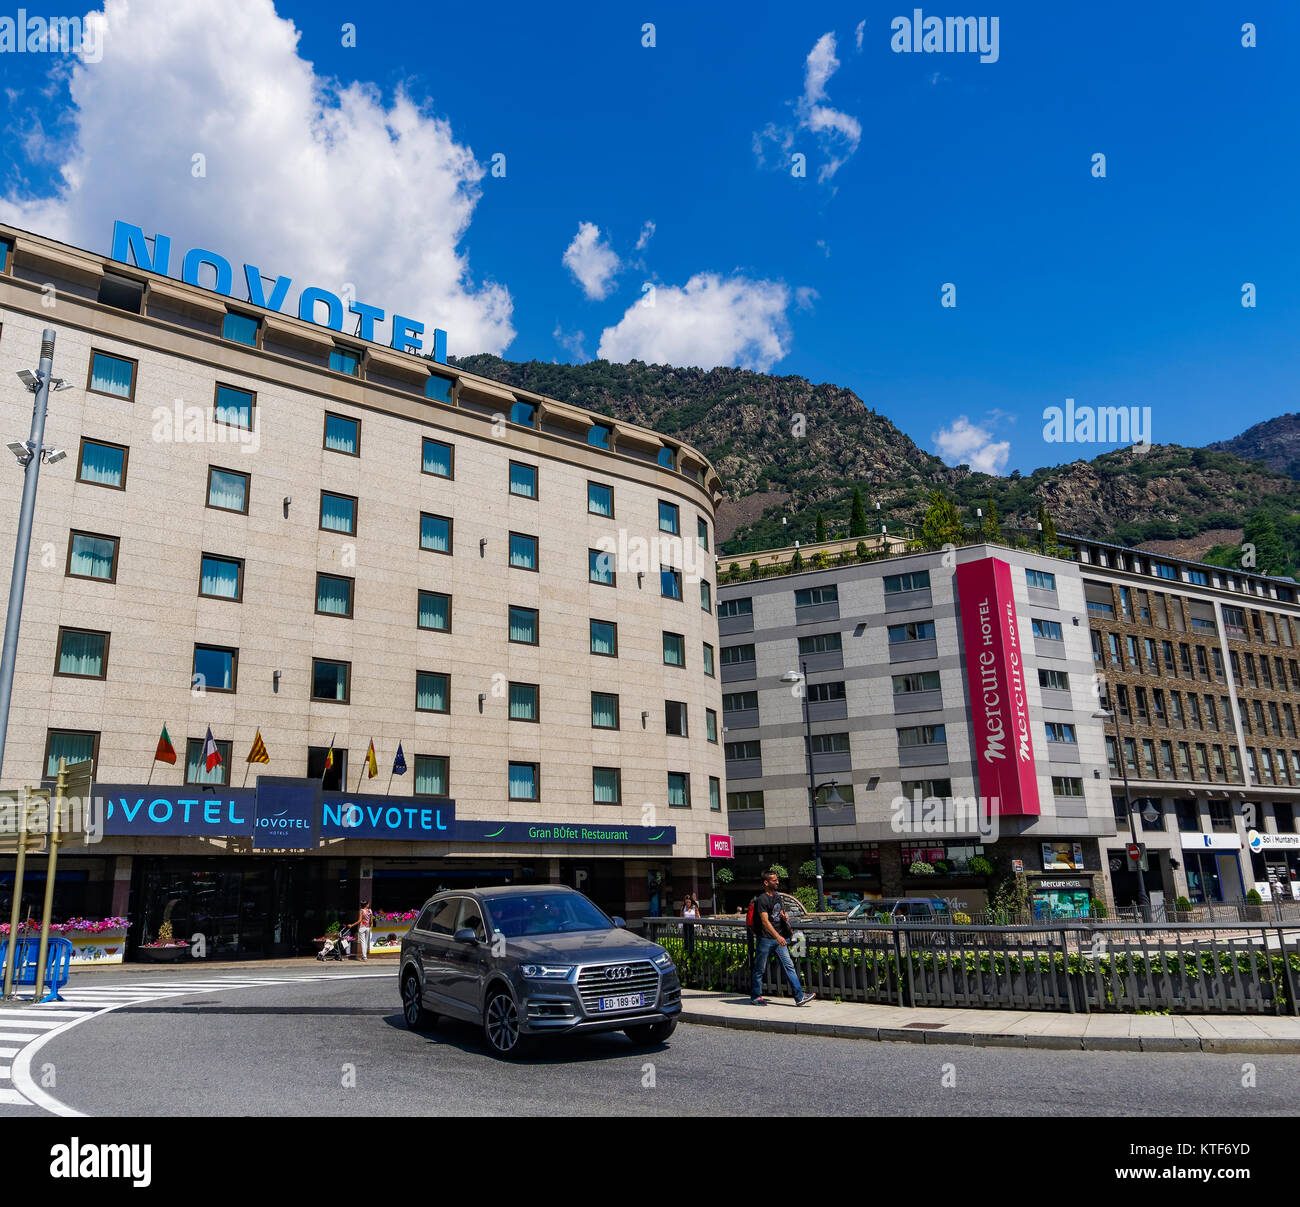 Andorra la Vella, Andorra Hotels facade. Day view of local buildings by a green hill on the capital of the Principality - Stock Image